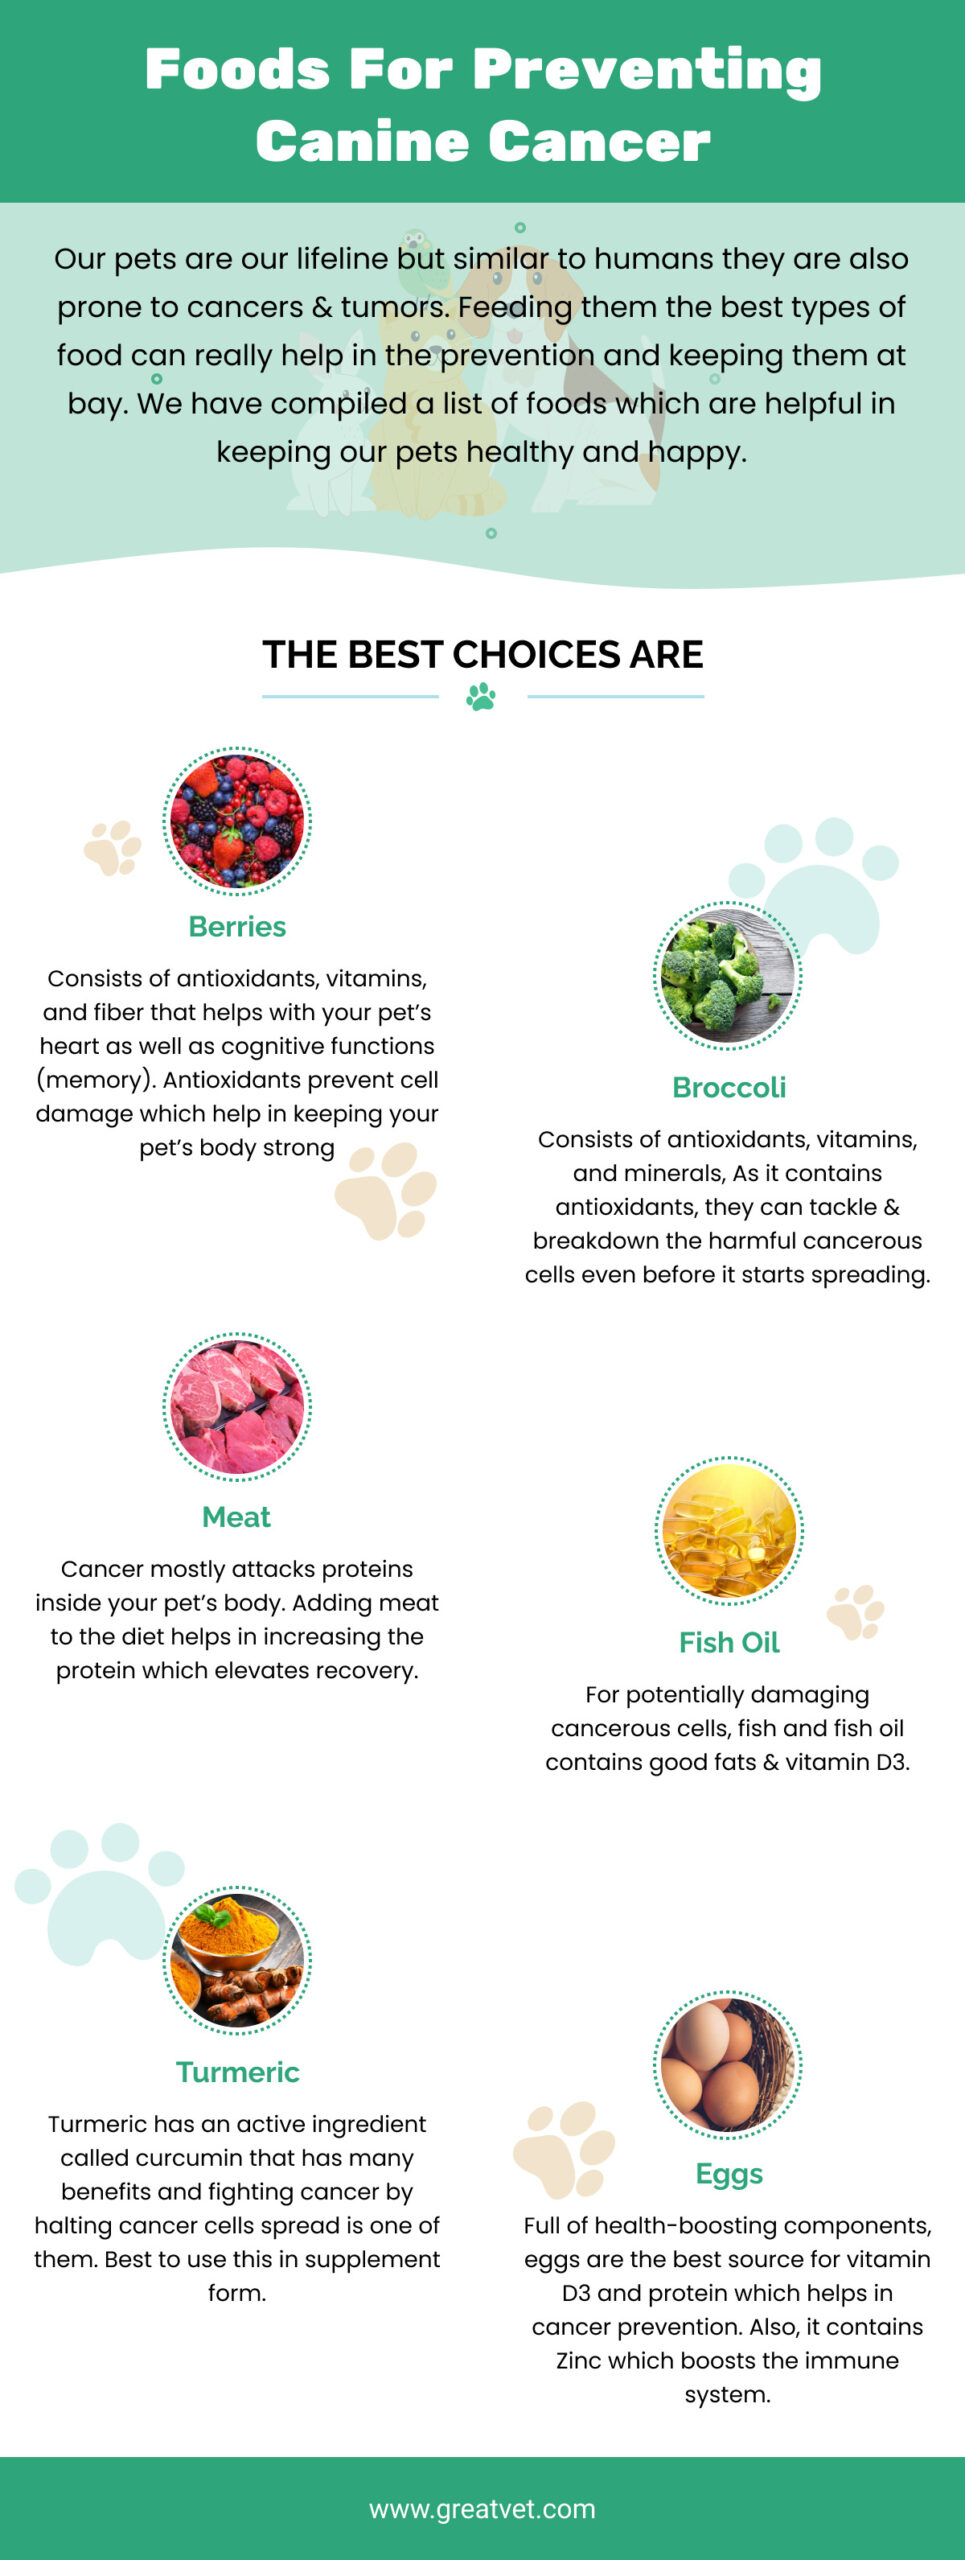 Foods For Preventing Canine Cancer - GreatVet